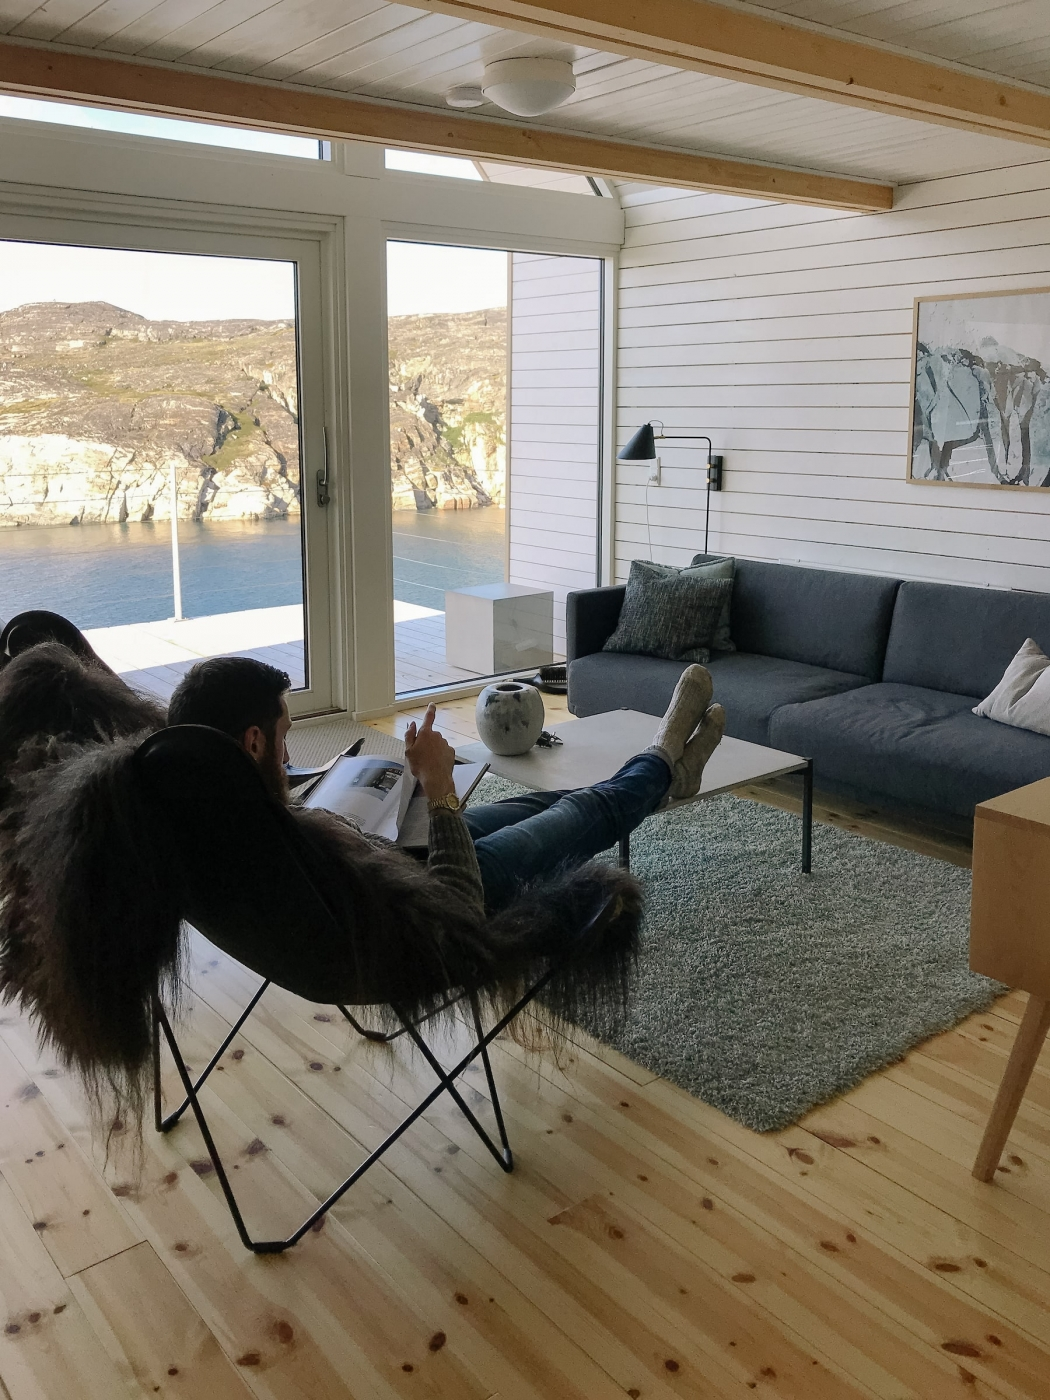 A tourist relaxes and reads inside the Iliminaq Lodge. Photo by Jessie Brinkman Evans - Visit Greenland